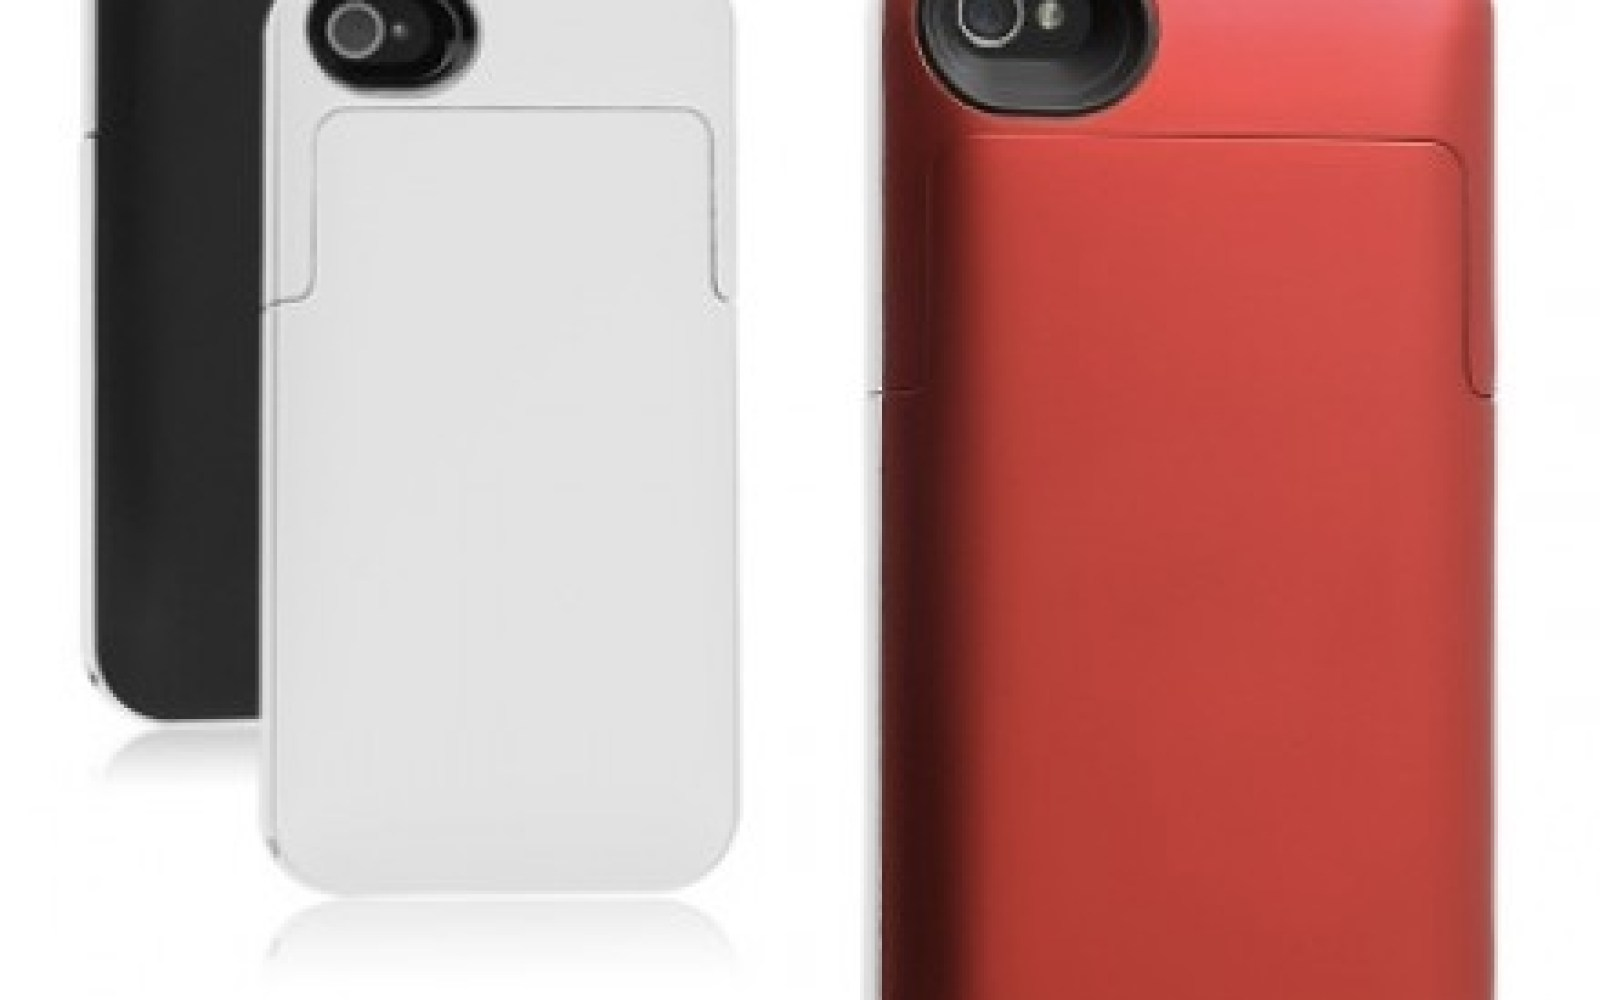 Mophie Juice Pack Air Charging Battery Case for Apple iPhone 4 and 4S – Refurbished – $14.99